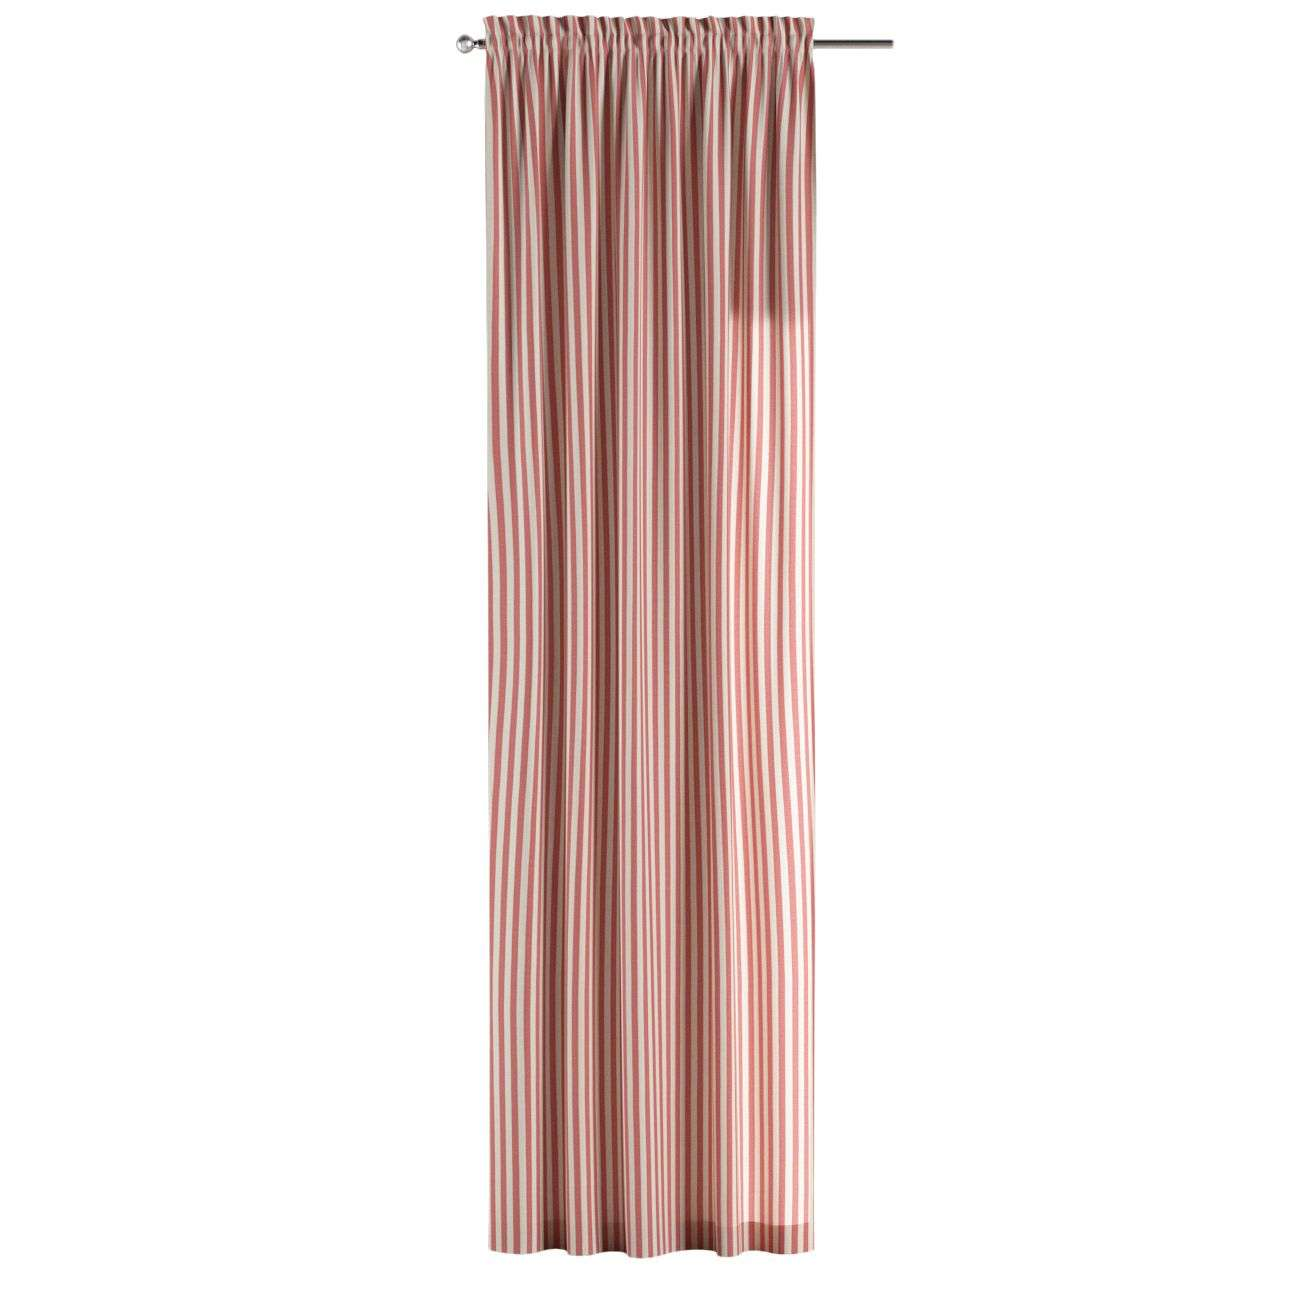 Slot and frill curtains 130 x 260 cm (51 x 102 inch) in collection Quadro, fabric: 136-17